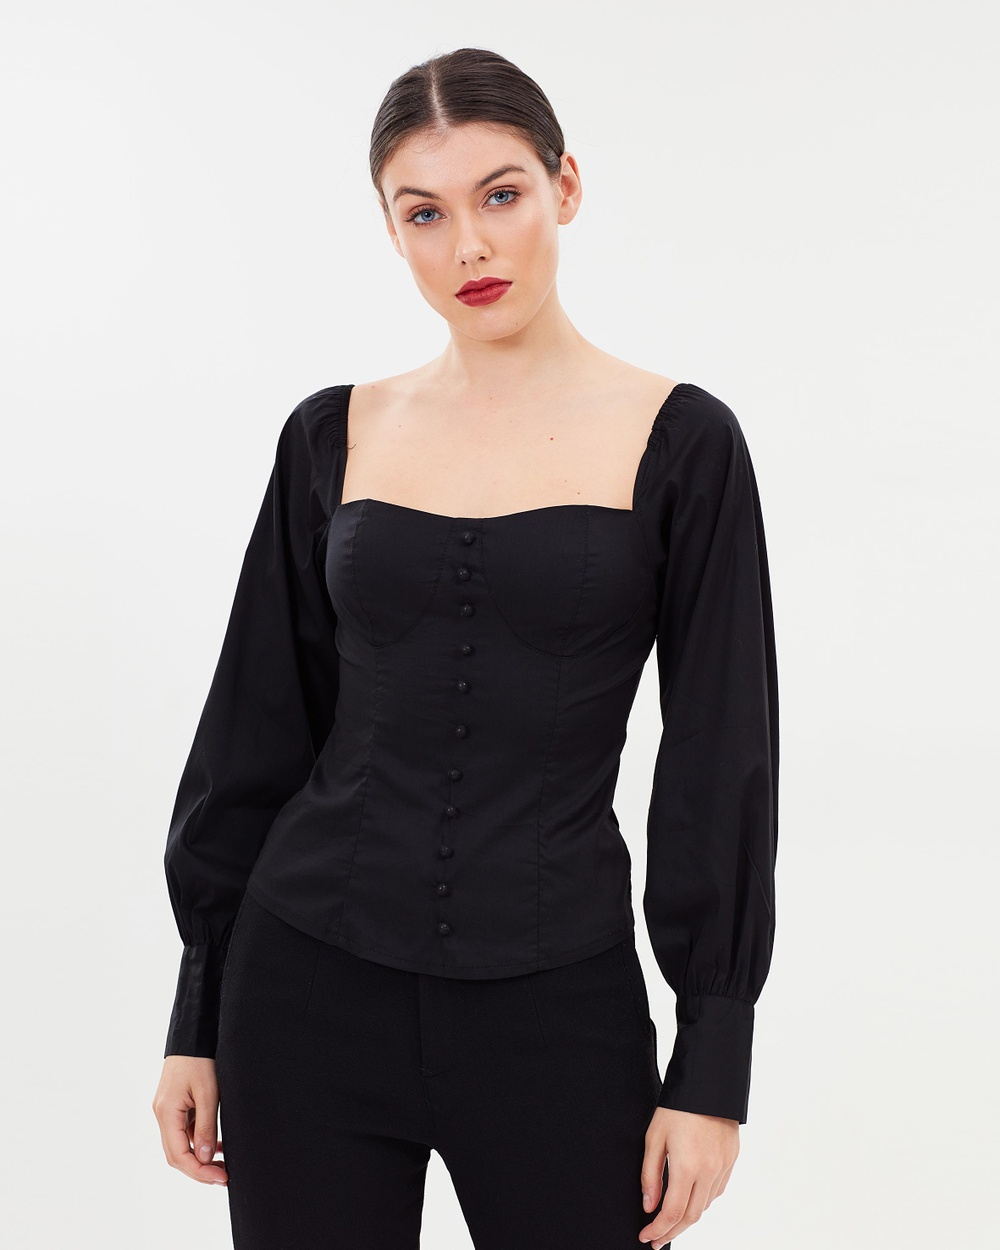 Lioness Hello Lover Top Tops Black Hello Lover Top